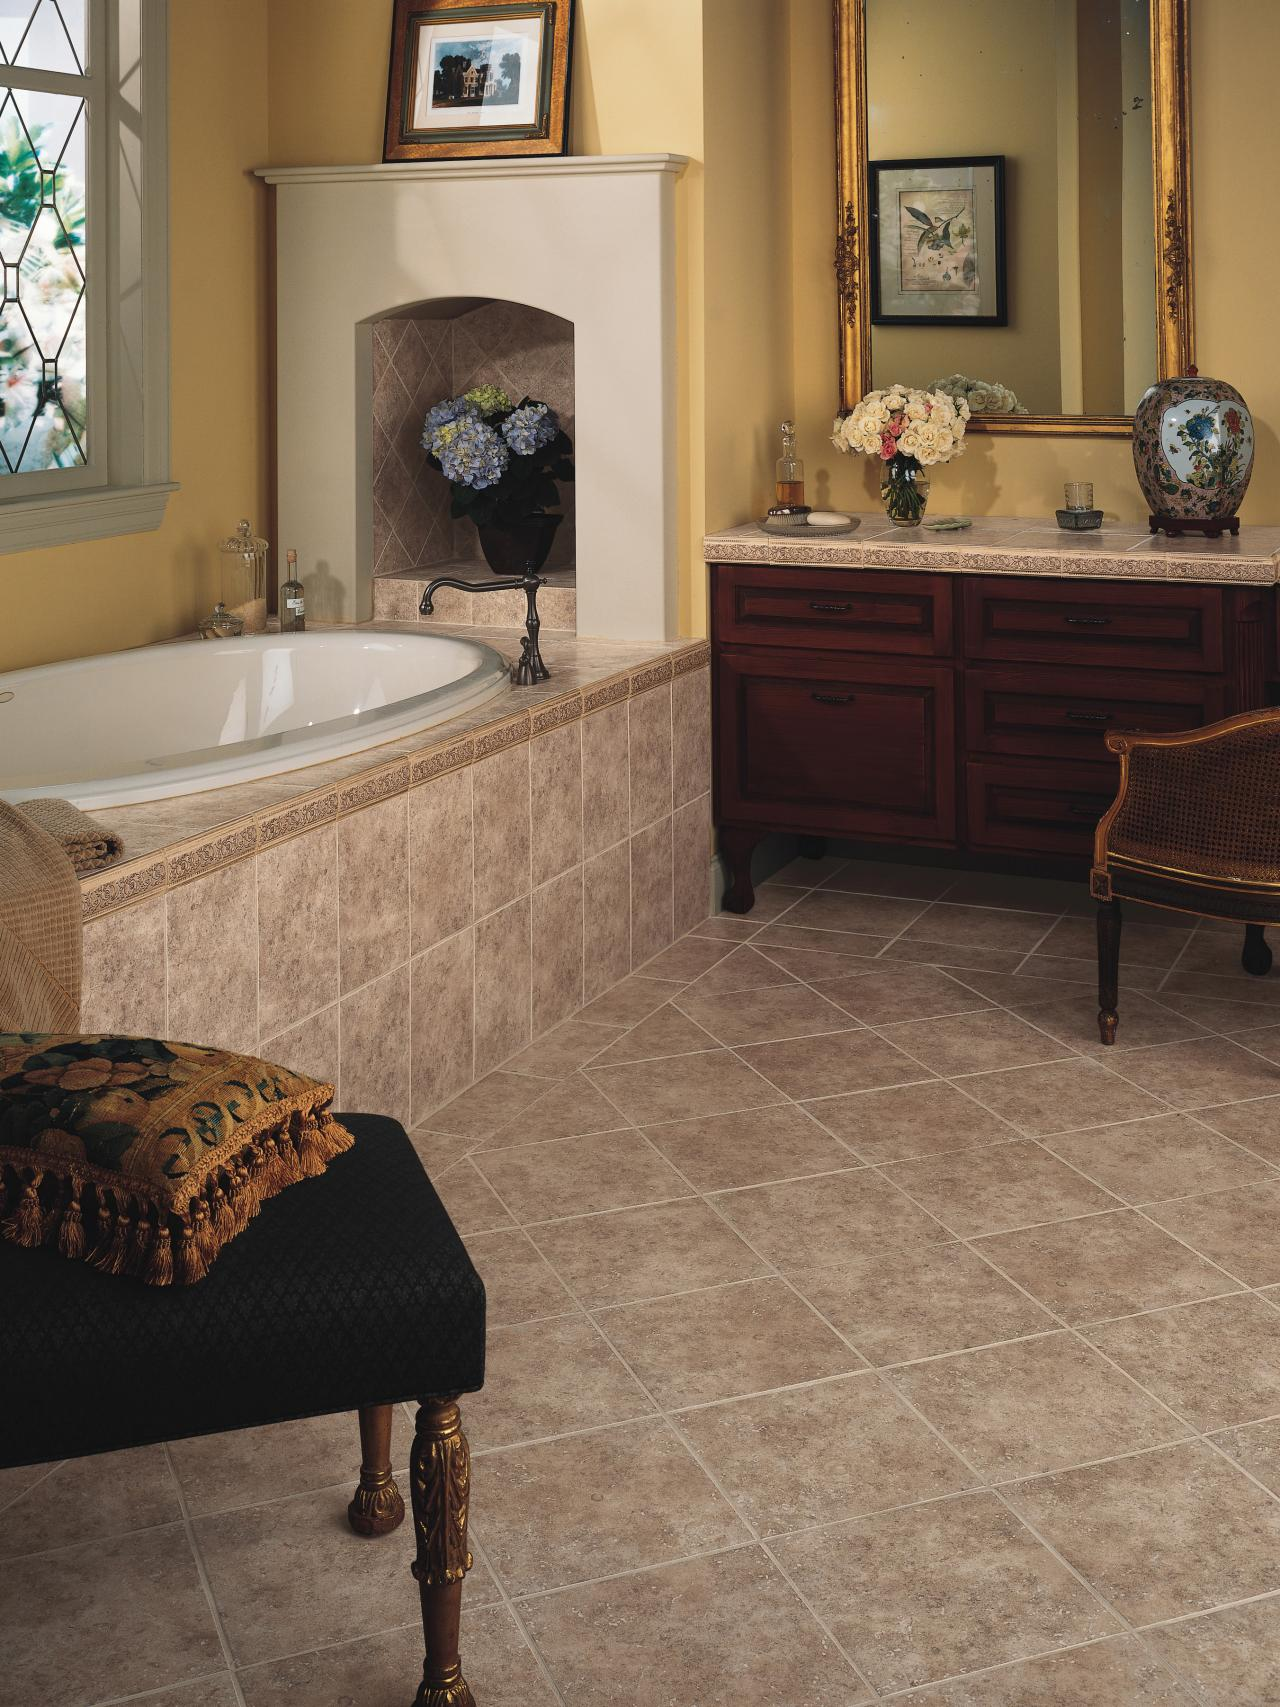 Ceramic tile flooring durable and easy to clean tile is a practical flooring choice for the Bathroom flooring tile